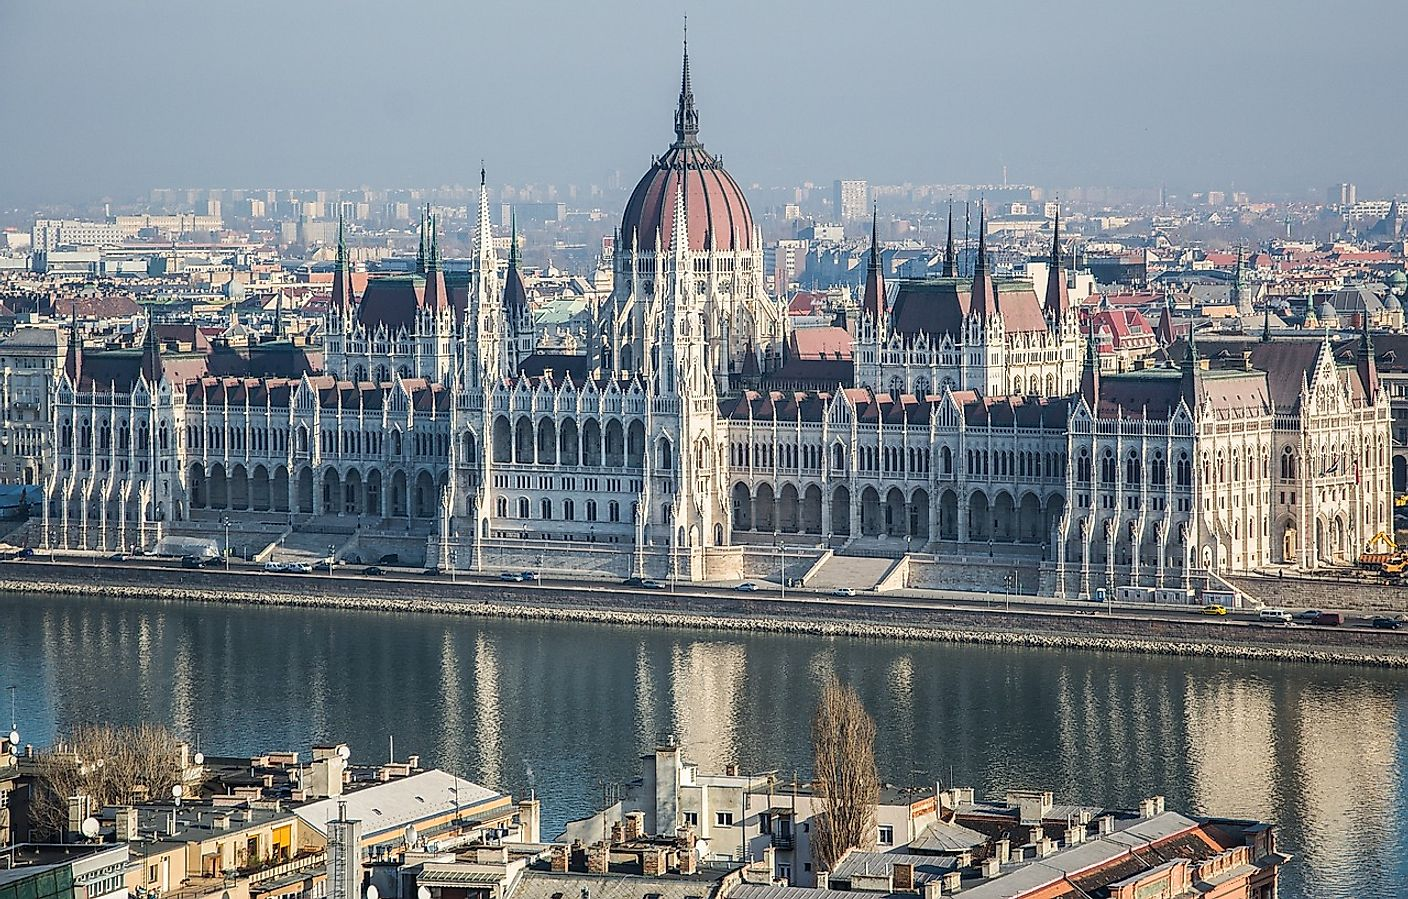 The Hungarian Parliament Building as seen from across the Danube river on the Buda side of the city.